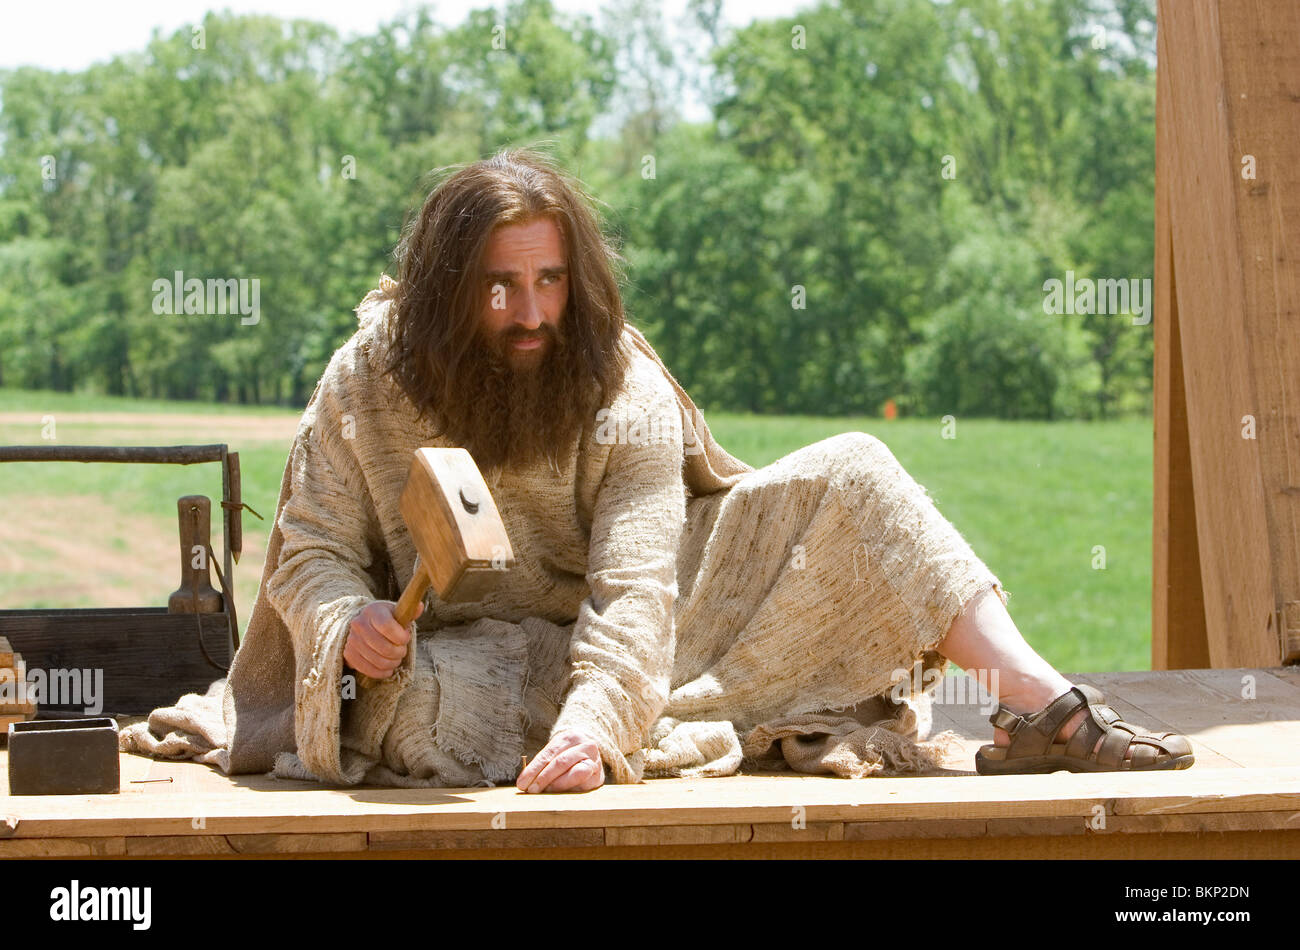 EVAN ALMIGHTY (2007) STEVE CARELL EVAL 001-06 - Stock Image